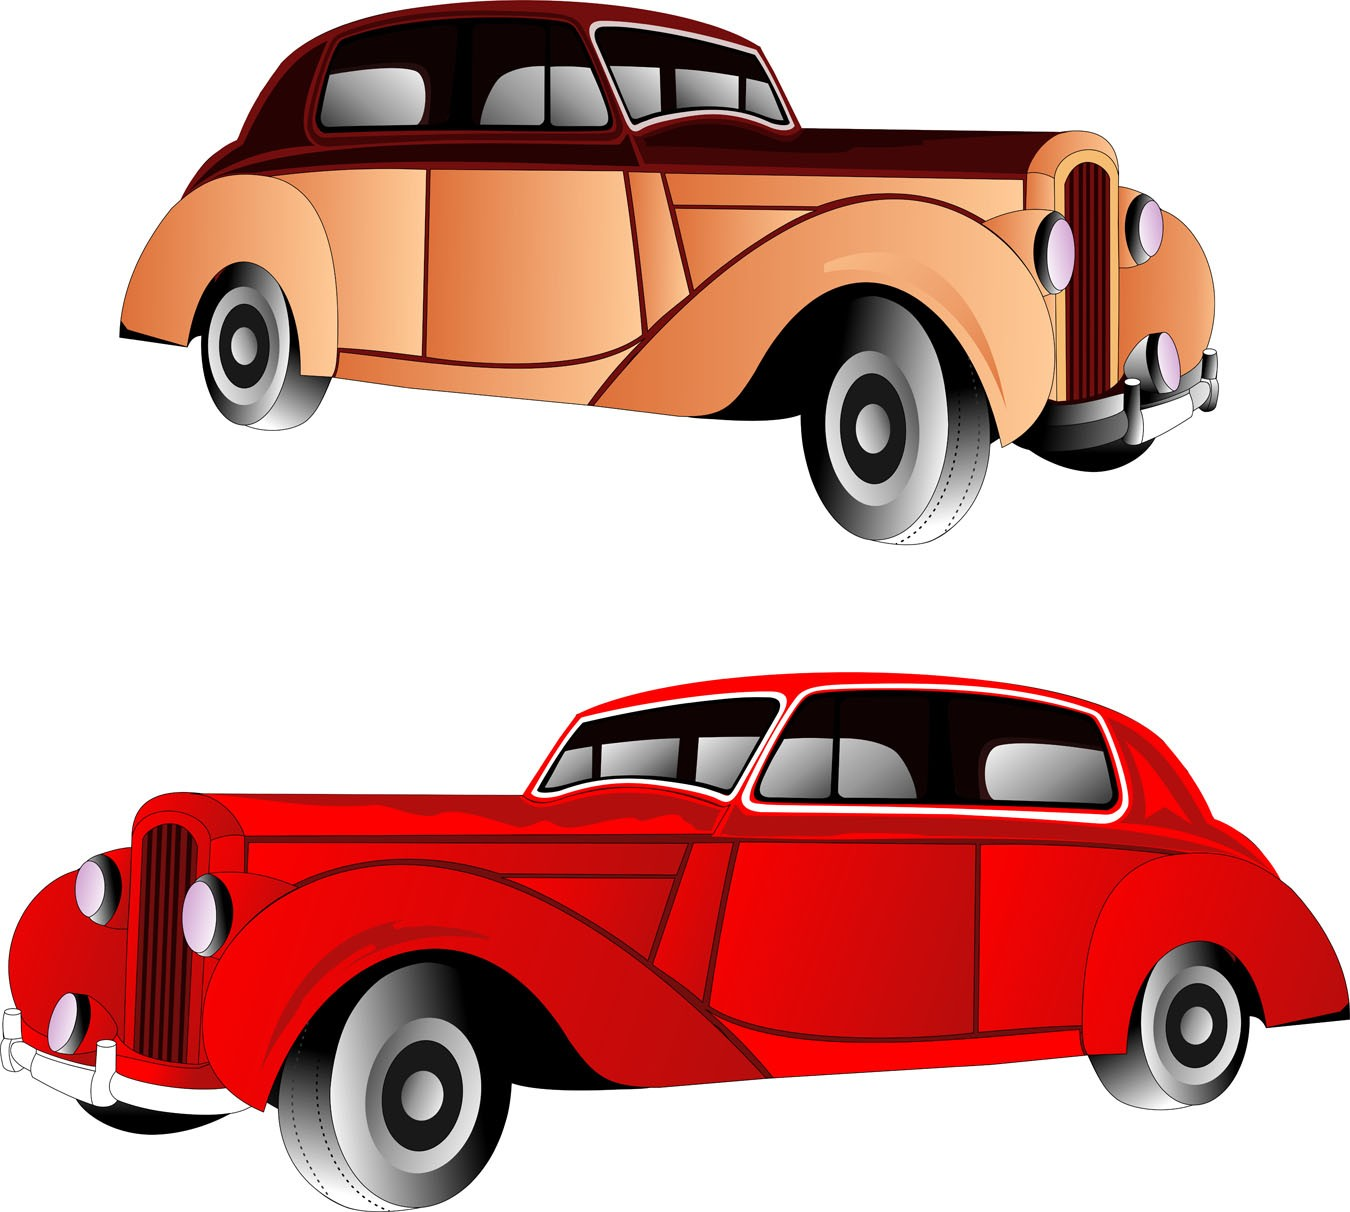 1350x1212 Classic Car Images Free Luxury Vintage Car Clipart Free Download